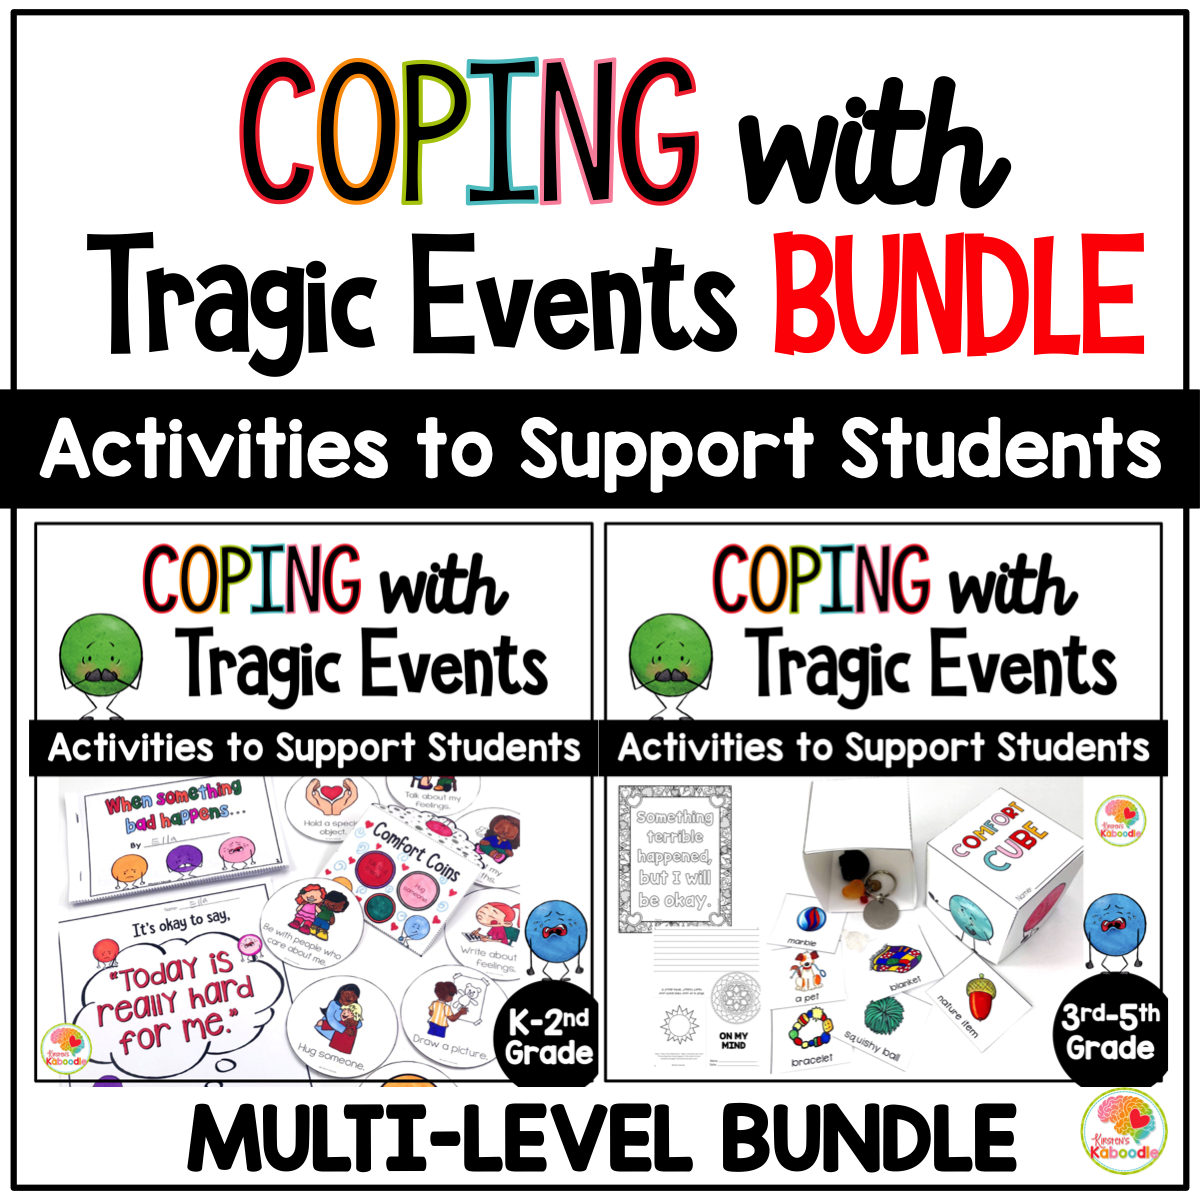 Coping with Tragic Events: Activities to Support Students BUNDLE